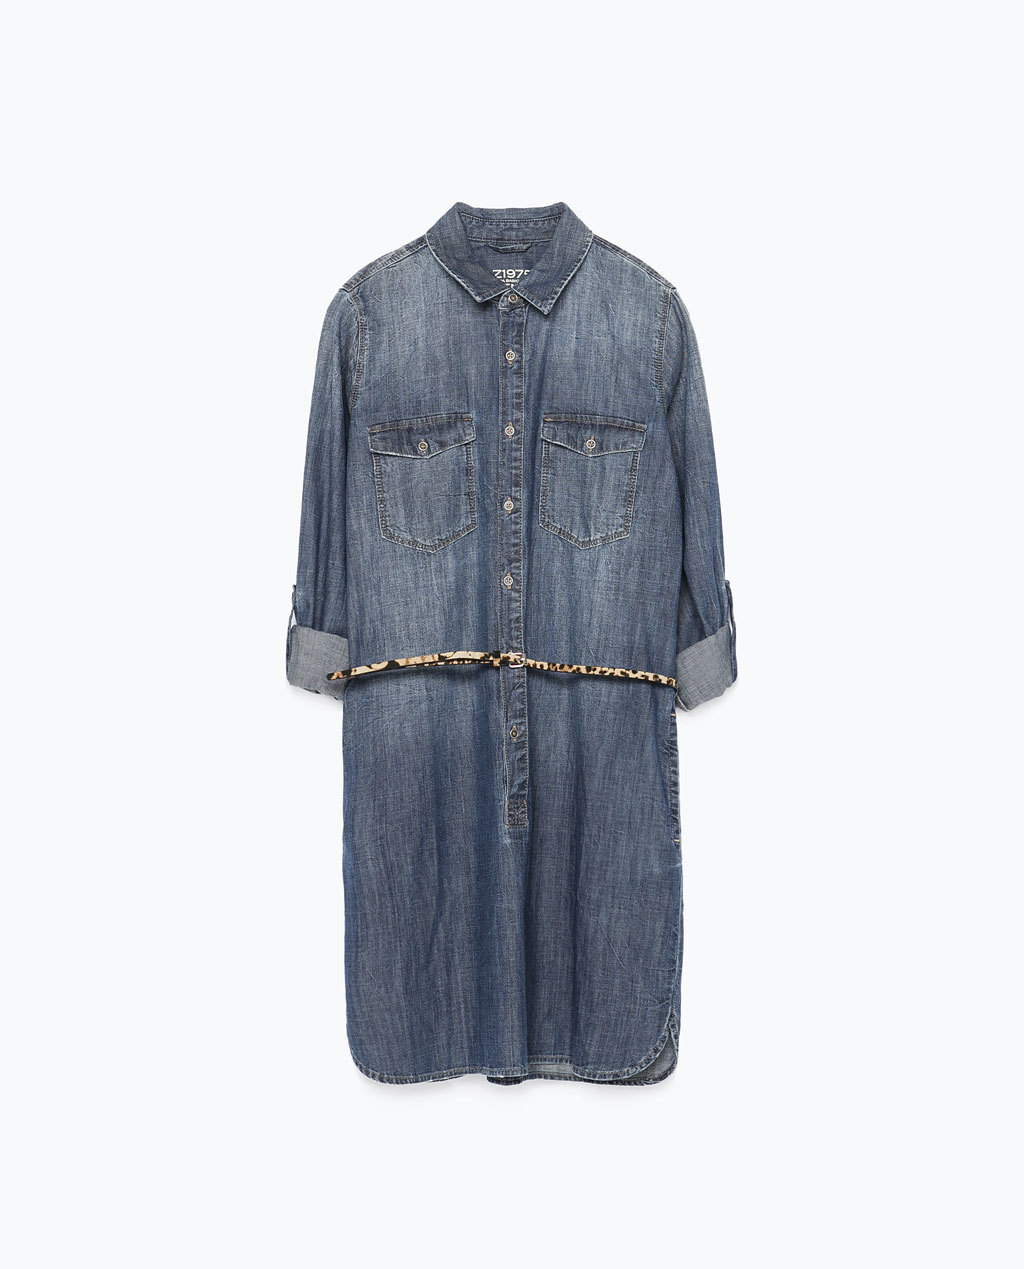 Denim Dress With Belt - style: shirt; length: mid thigh; neckline: shirt collar/peter pan/zip with opening; fit: loose; pattern: plain; bust detail: pocket detail at bust; waist detail: belted waist/tie at waist/drawstring; predominant colour: denim; occasions: casual, creative work; fibres: cotton - stretch; sleeve length: 3/4 length; sleeve style: standard; texture group: denim; pattern type: fabric; trends: alternative denim; season: s/s 2015